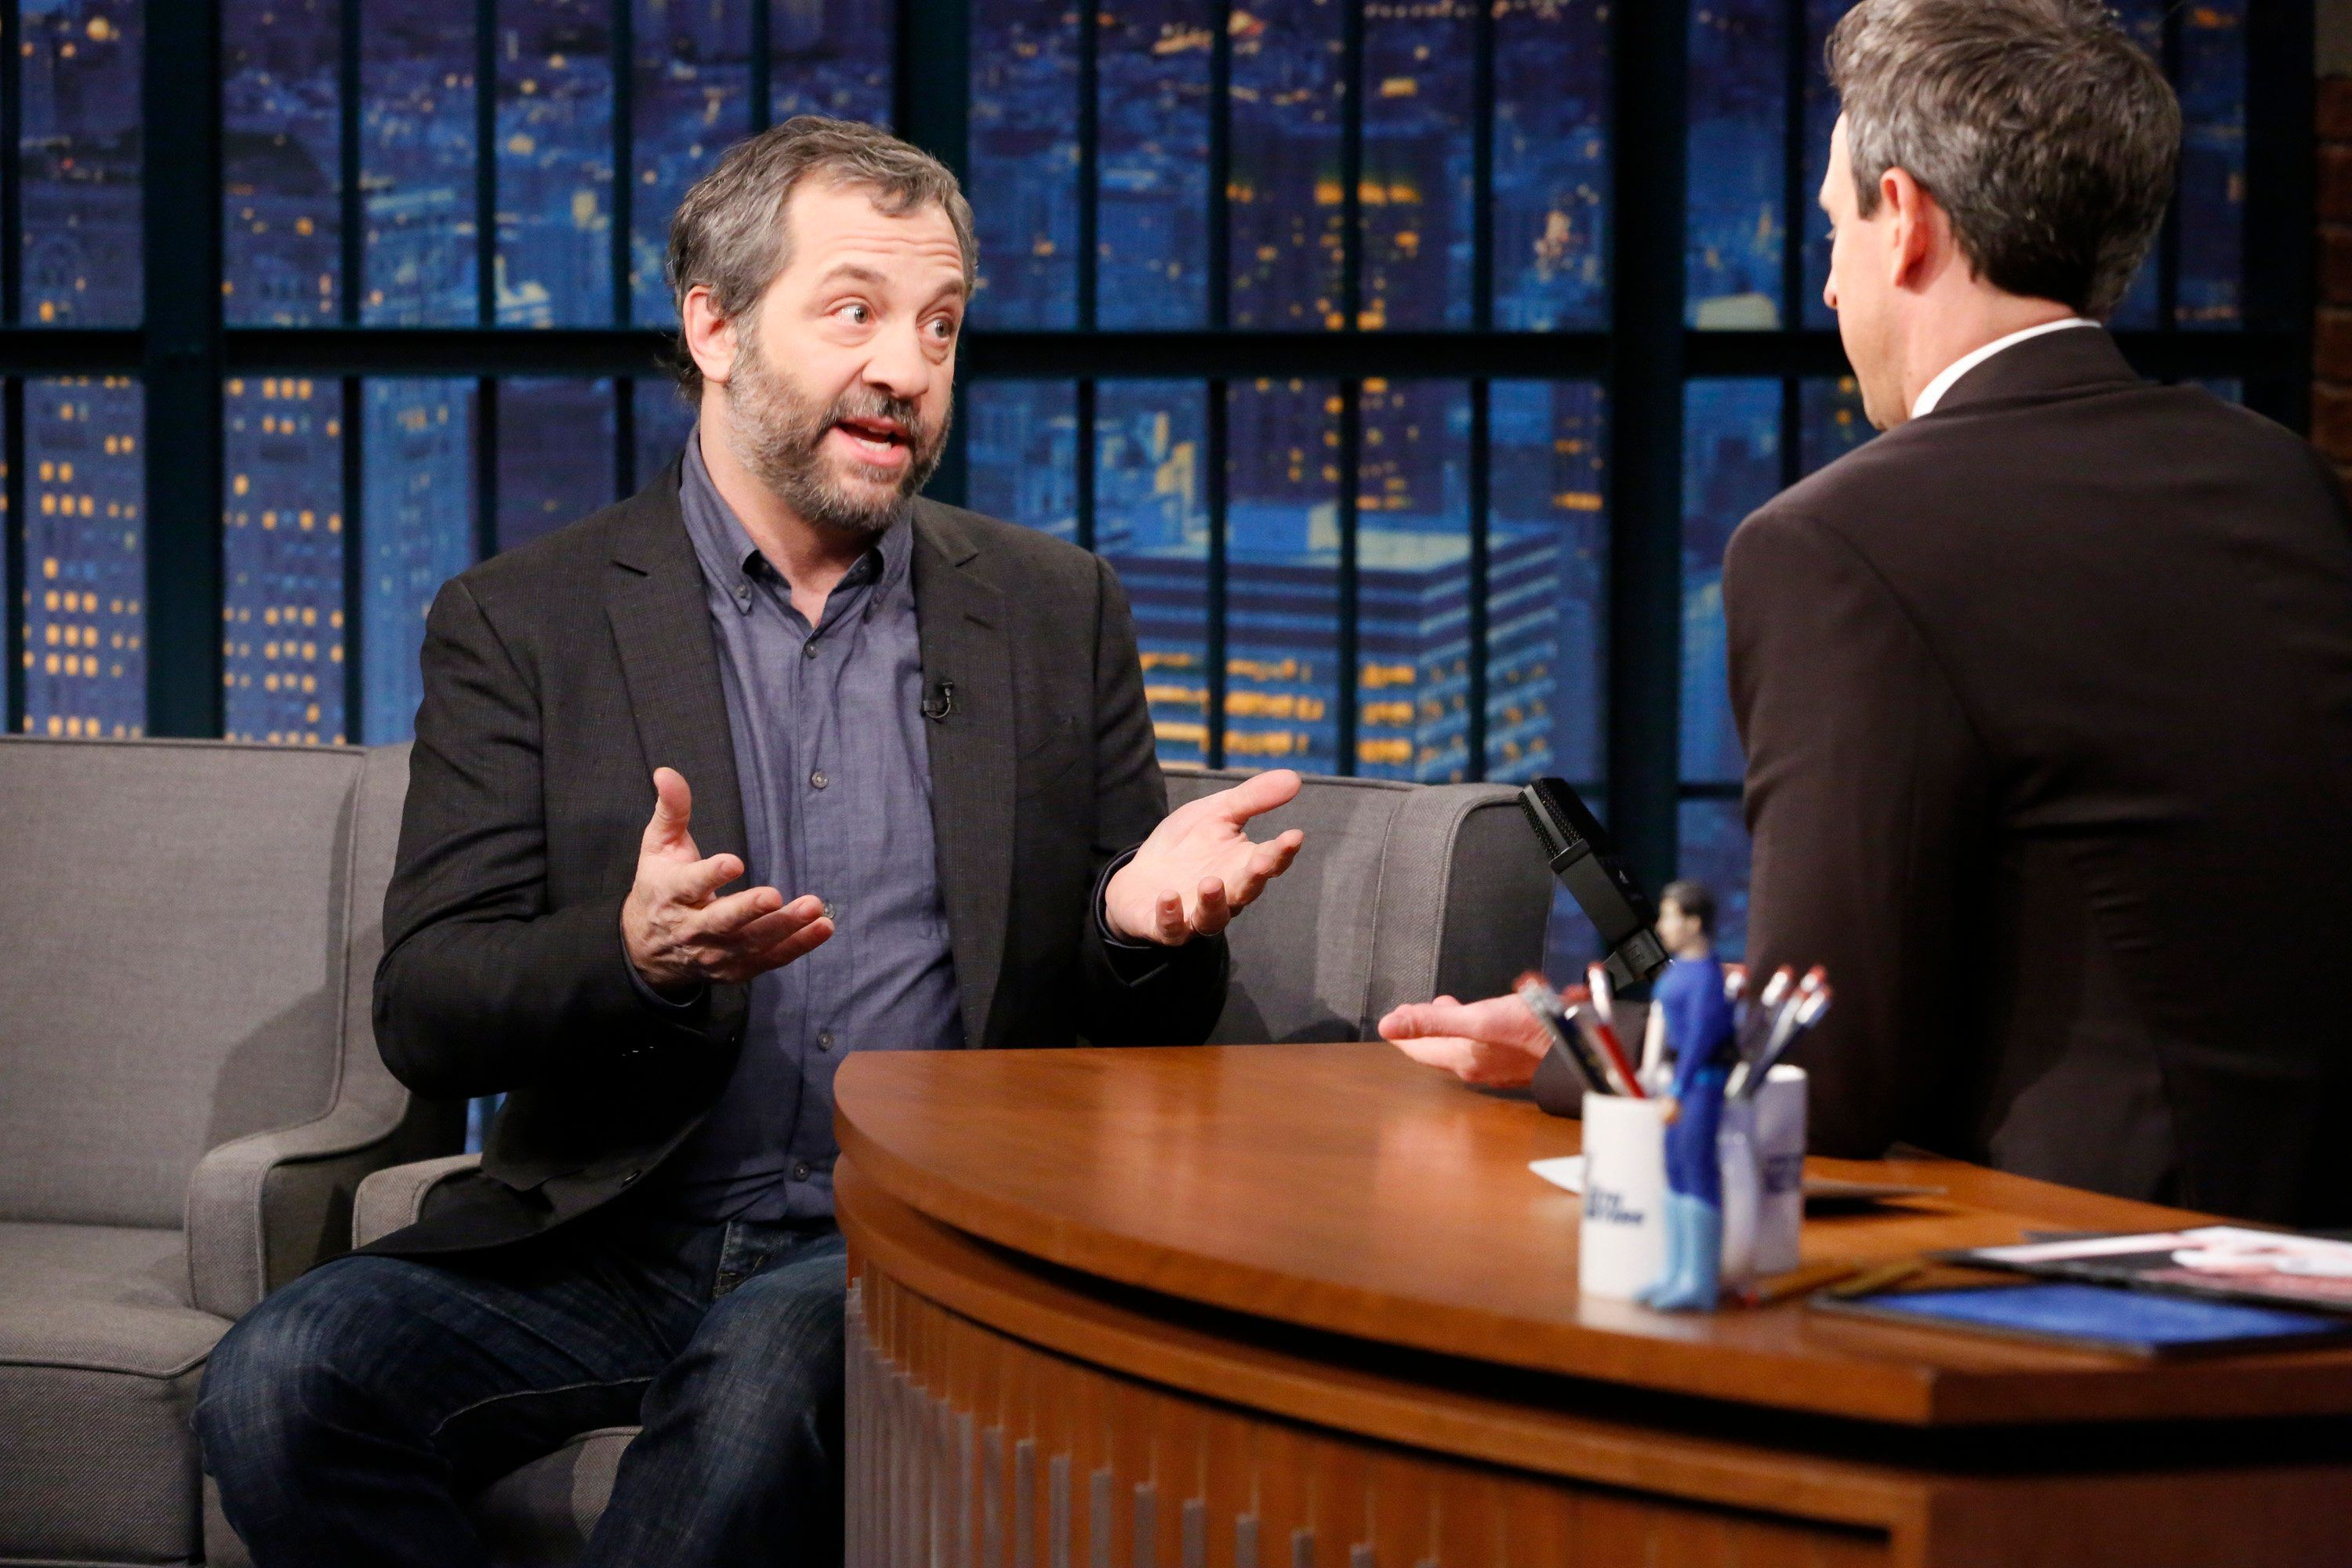 LATE NIGHT WITH SETH MEYERS -- Episode 625 -- Pictured: (l-r) Director Judd Apatow during an interview with host Seth Meyers on December 13, 2017 -- (Photo by: Lloyd Bishop/NBC/NBCU Photo Bank via Getty Images)